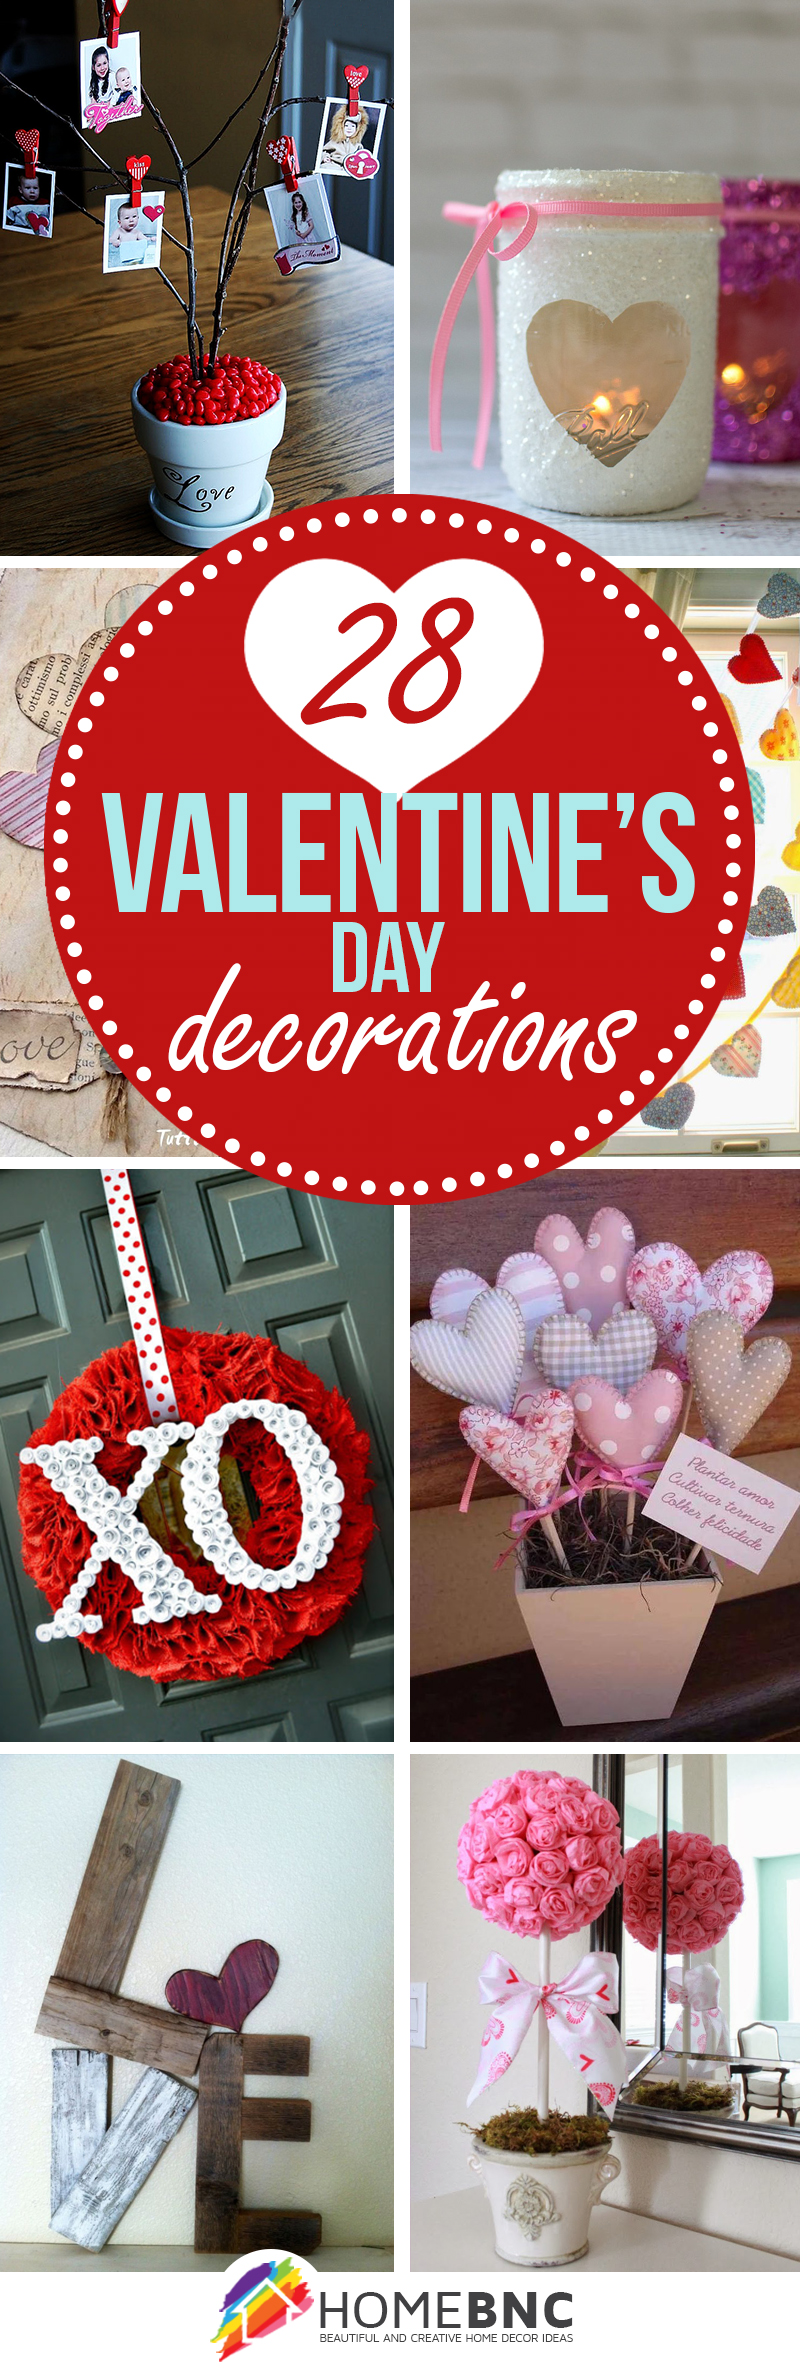 28 Romantic Valentineu0027s Day Decorations